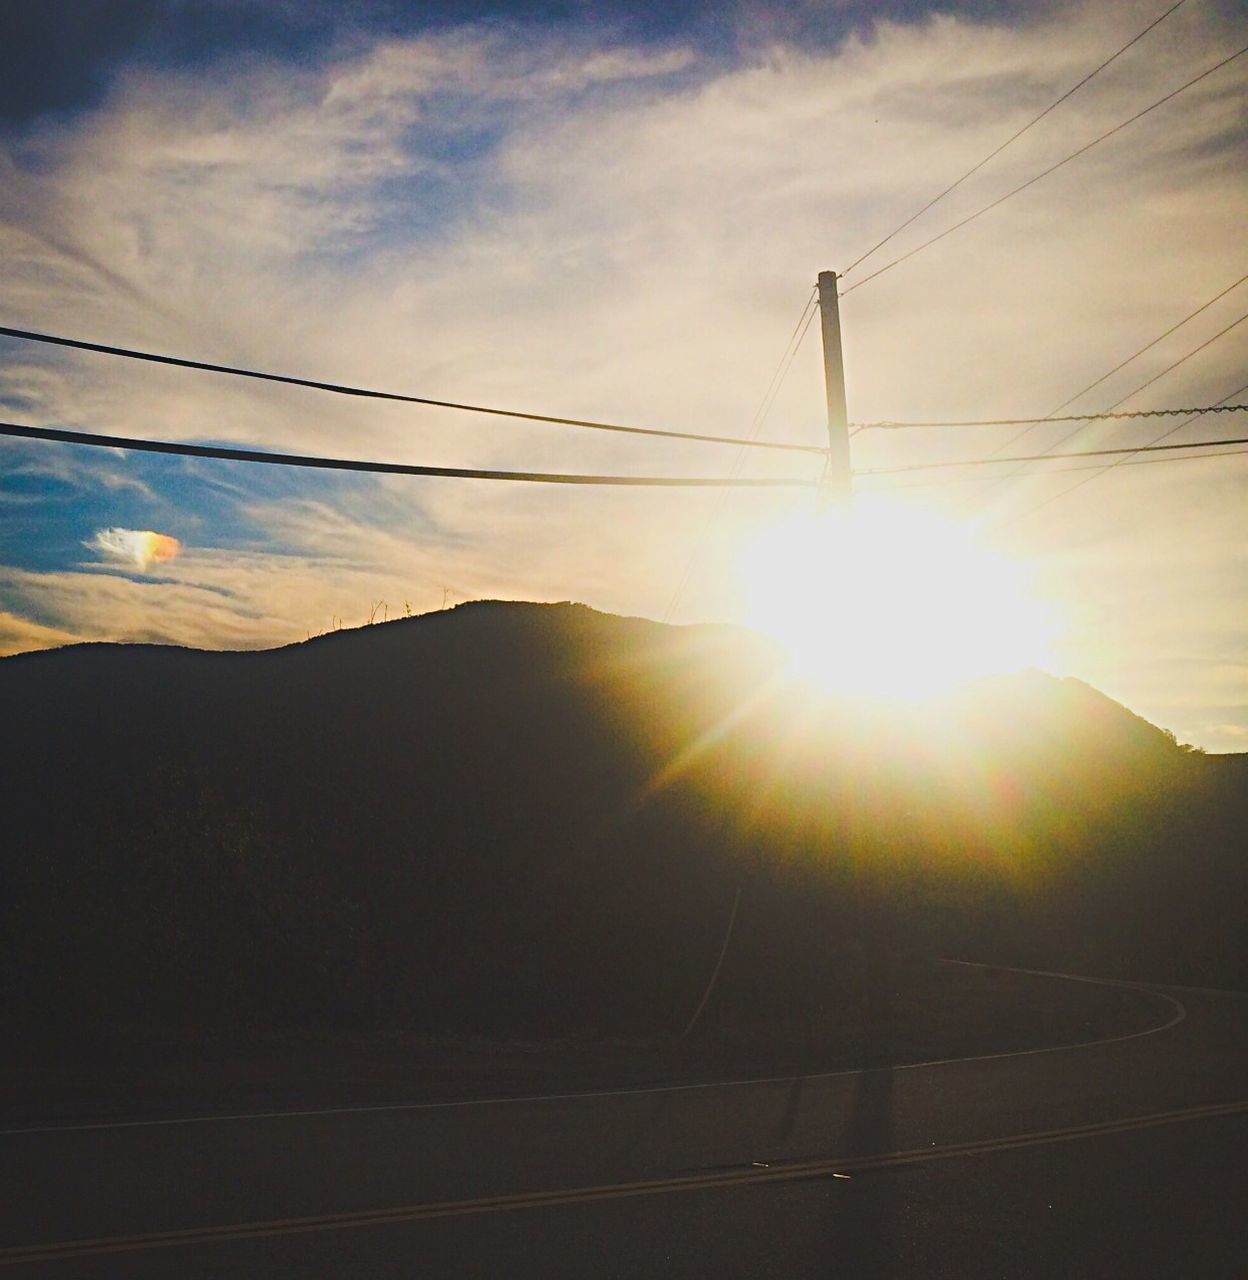 cable, sun, sky, sunbeam, lens flare, sunlight, power line, connection, electricity, nature, sunset, no people, scenics, power supply, tranquility, beauty in nature, outdoors, cloud - sky, tranquil scene, silhouette, landscape, electricity pylon, low angle view, day, mountain, vapor trail